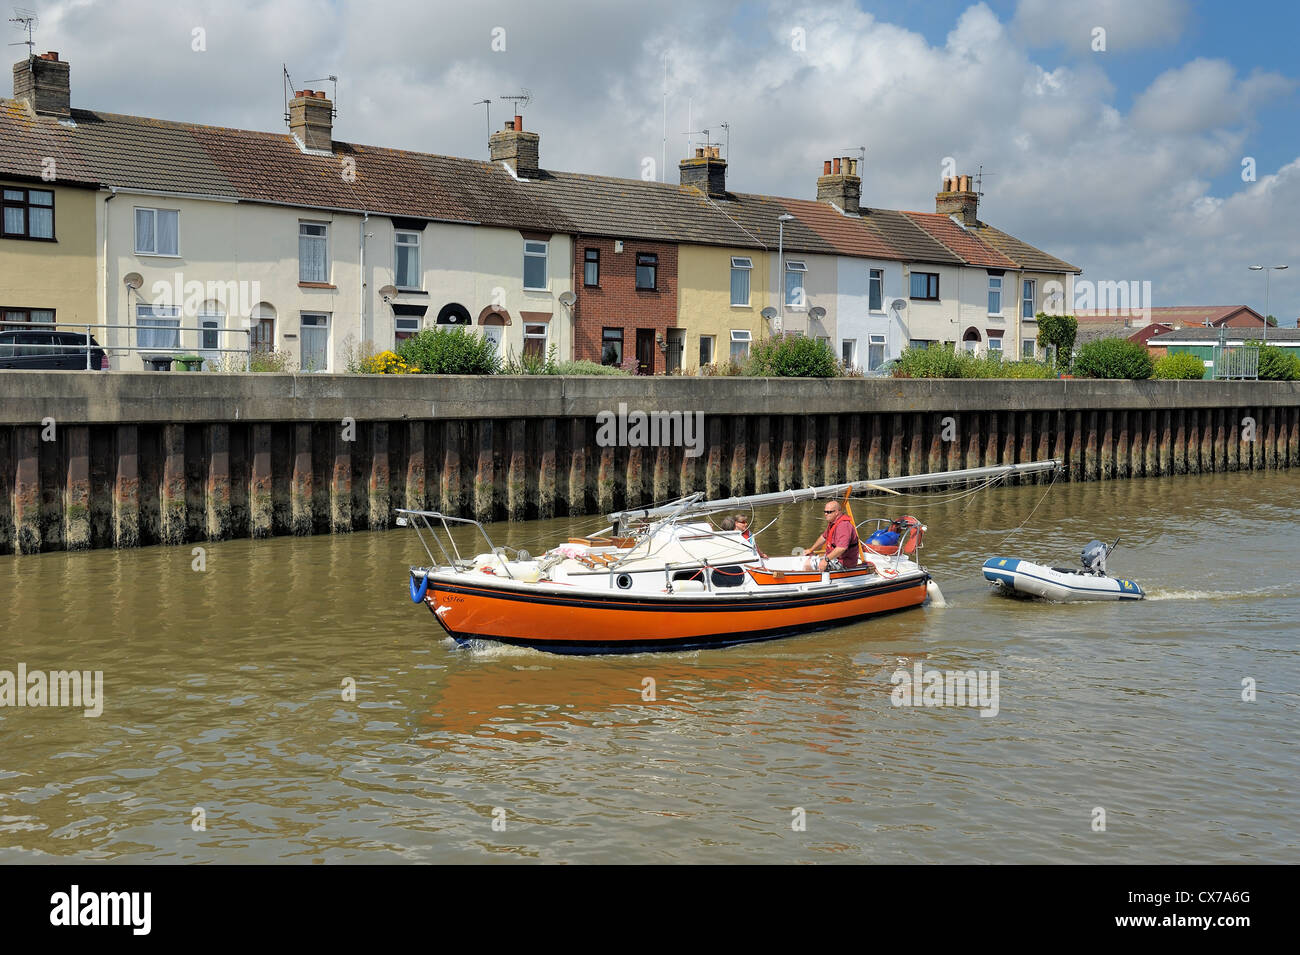 A family cruising on the river yare great yarmouth norfolk england uk - Stock Image